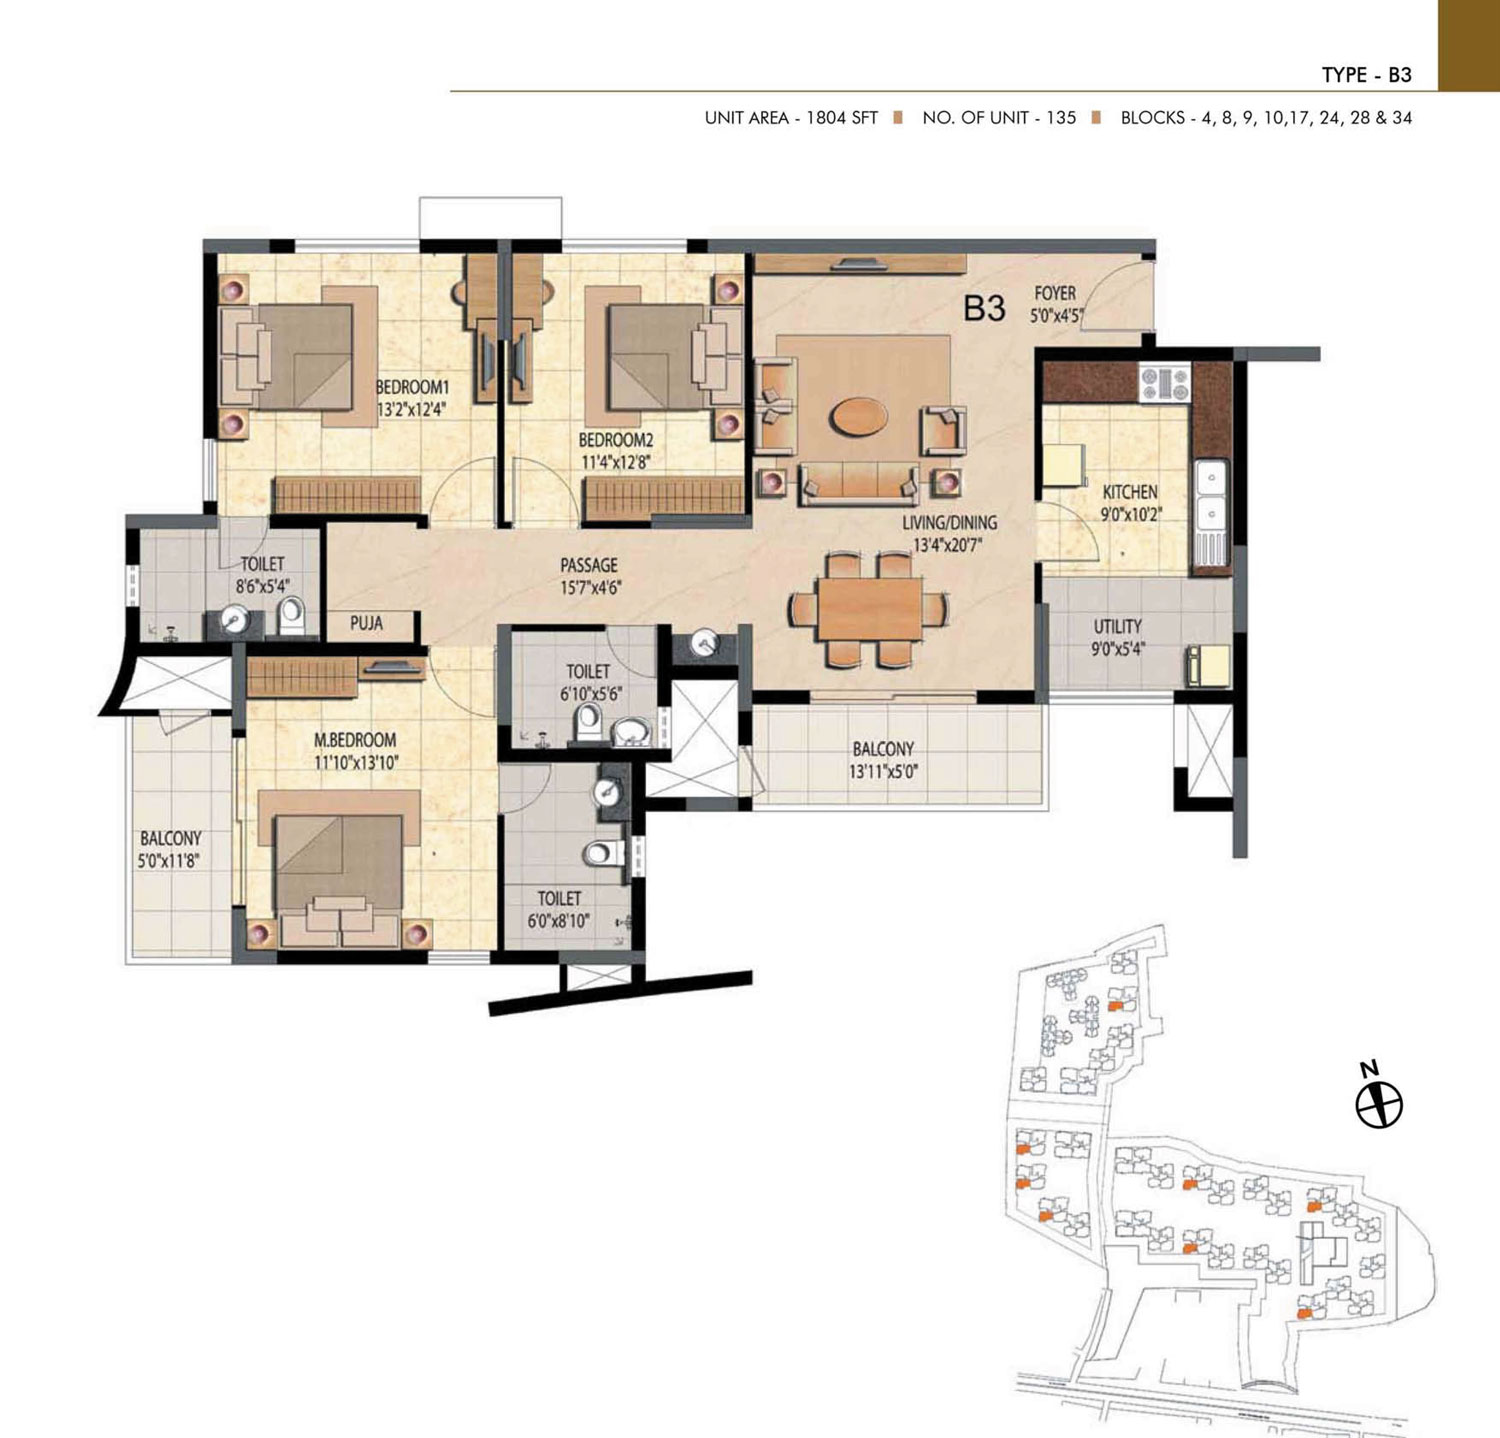 Type B3 - 3 Bed - 1804 Sq Ft